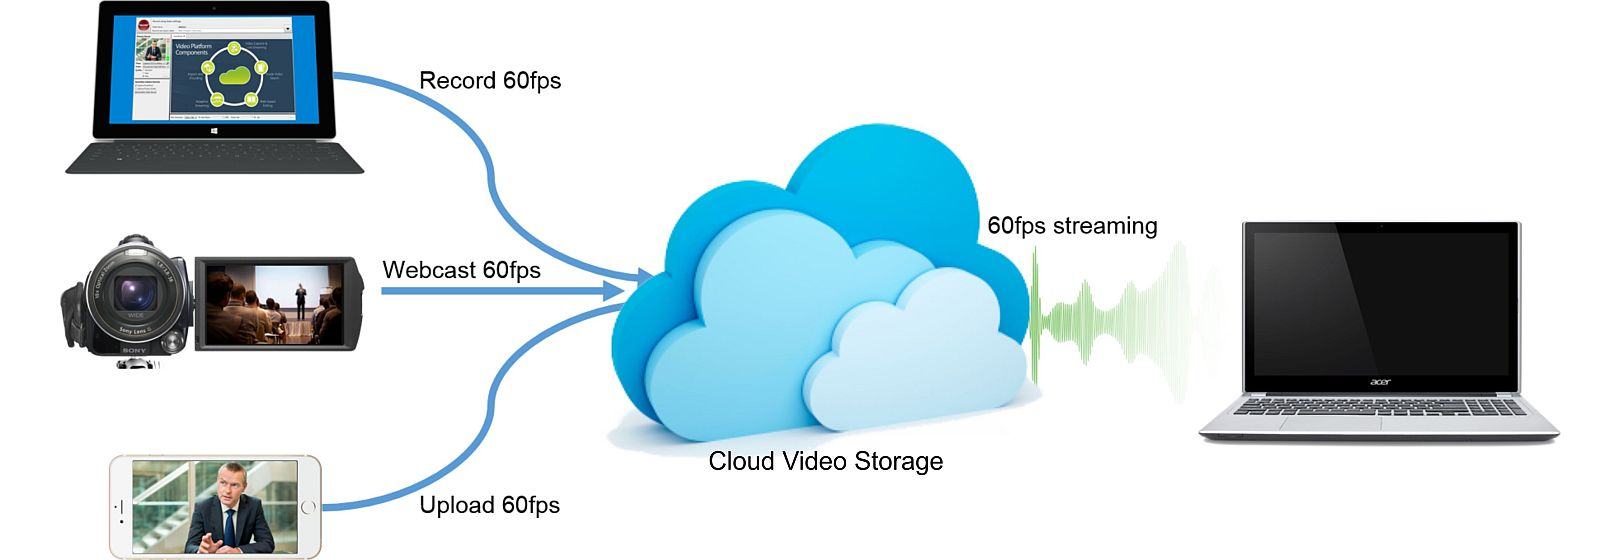 Cloud Based Video Streaming Market